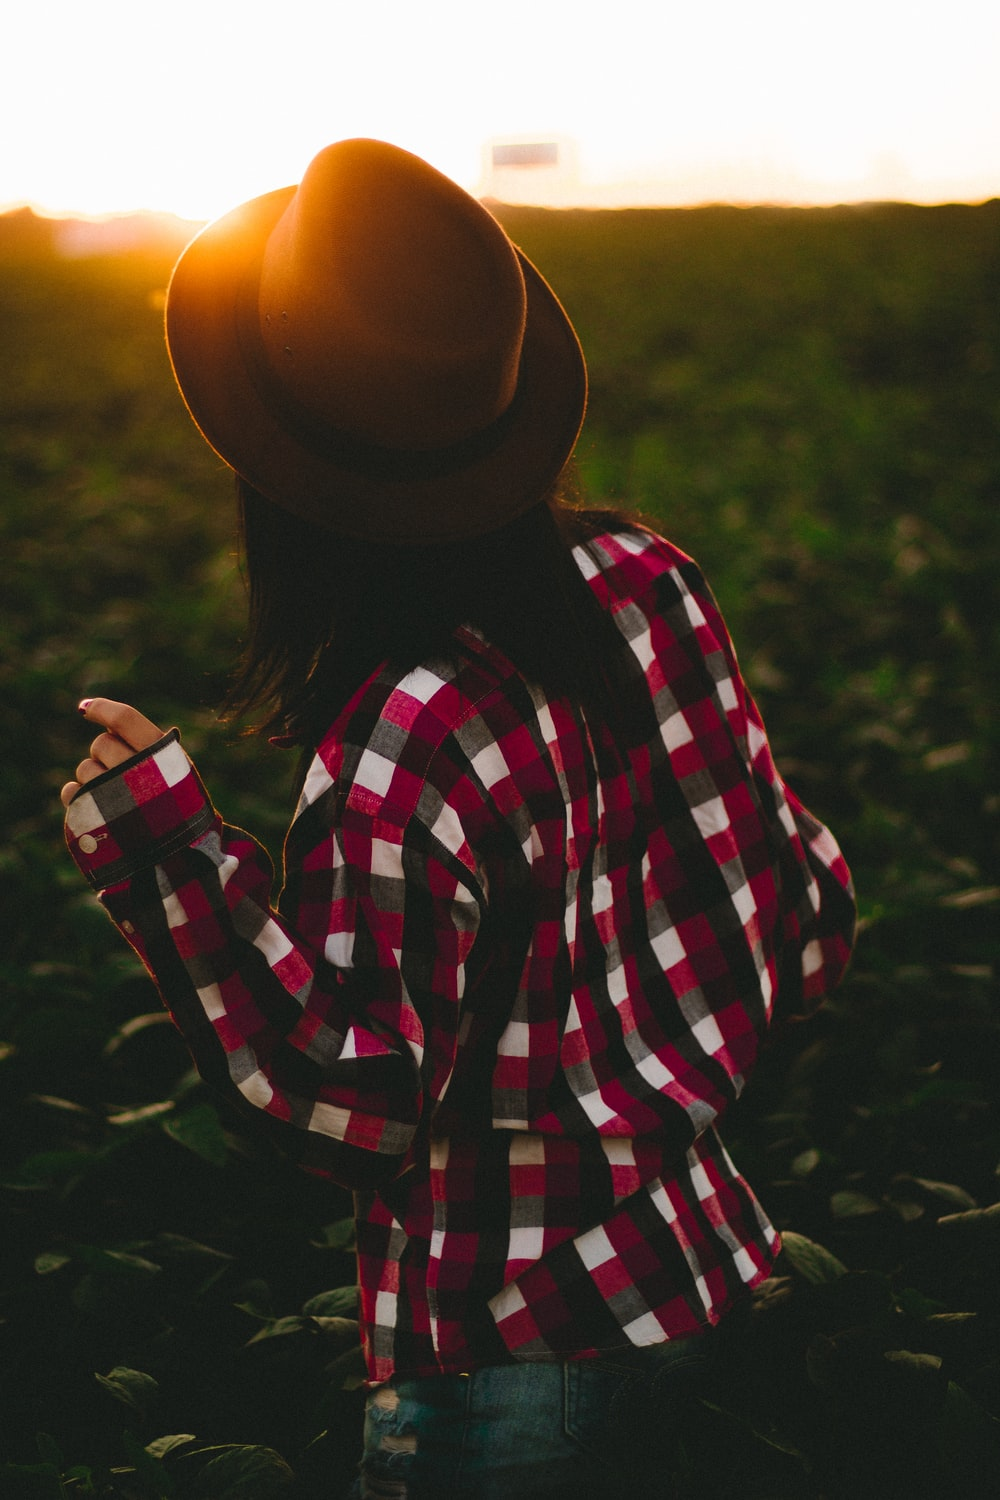 woman wearing hat and checked shirt on green grass